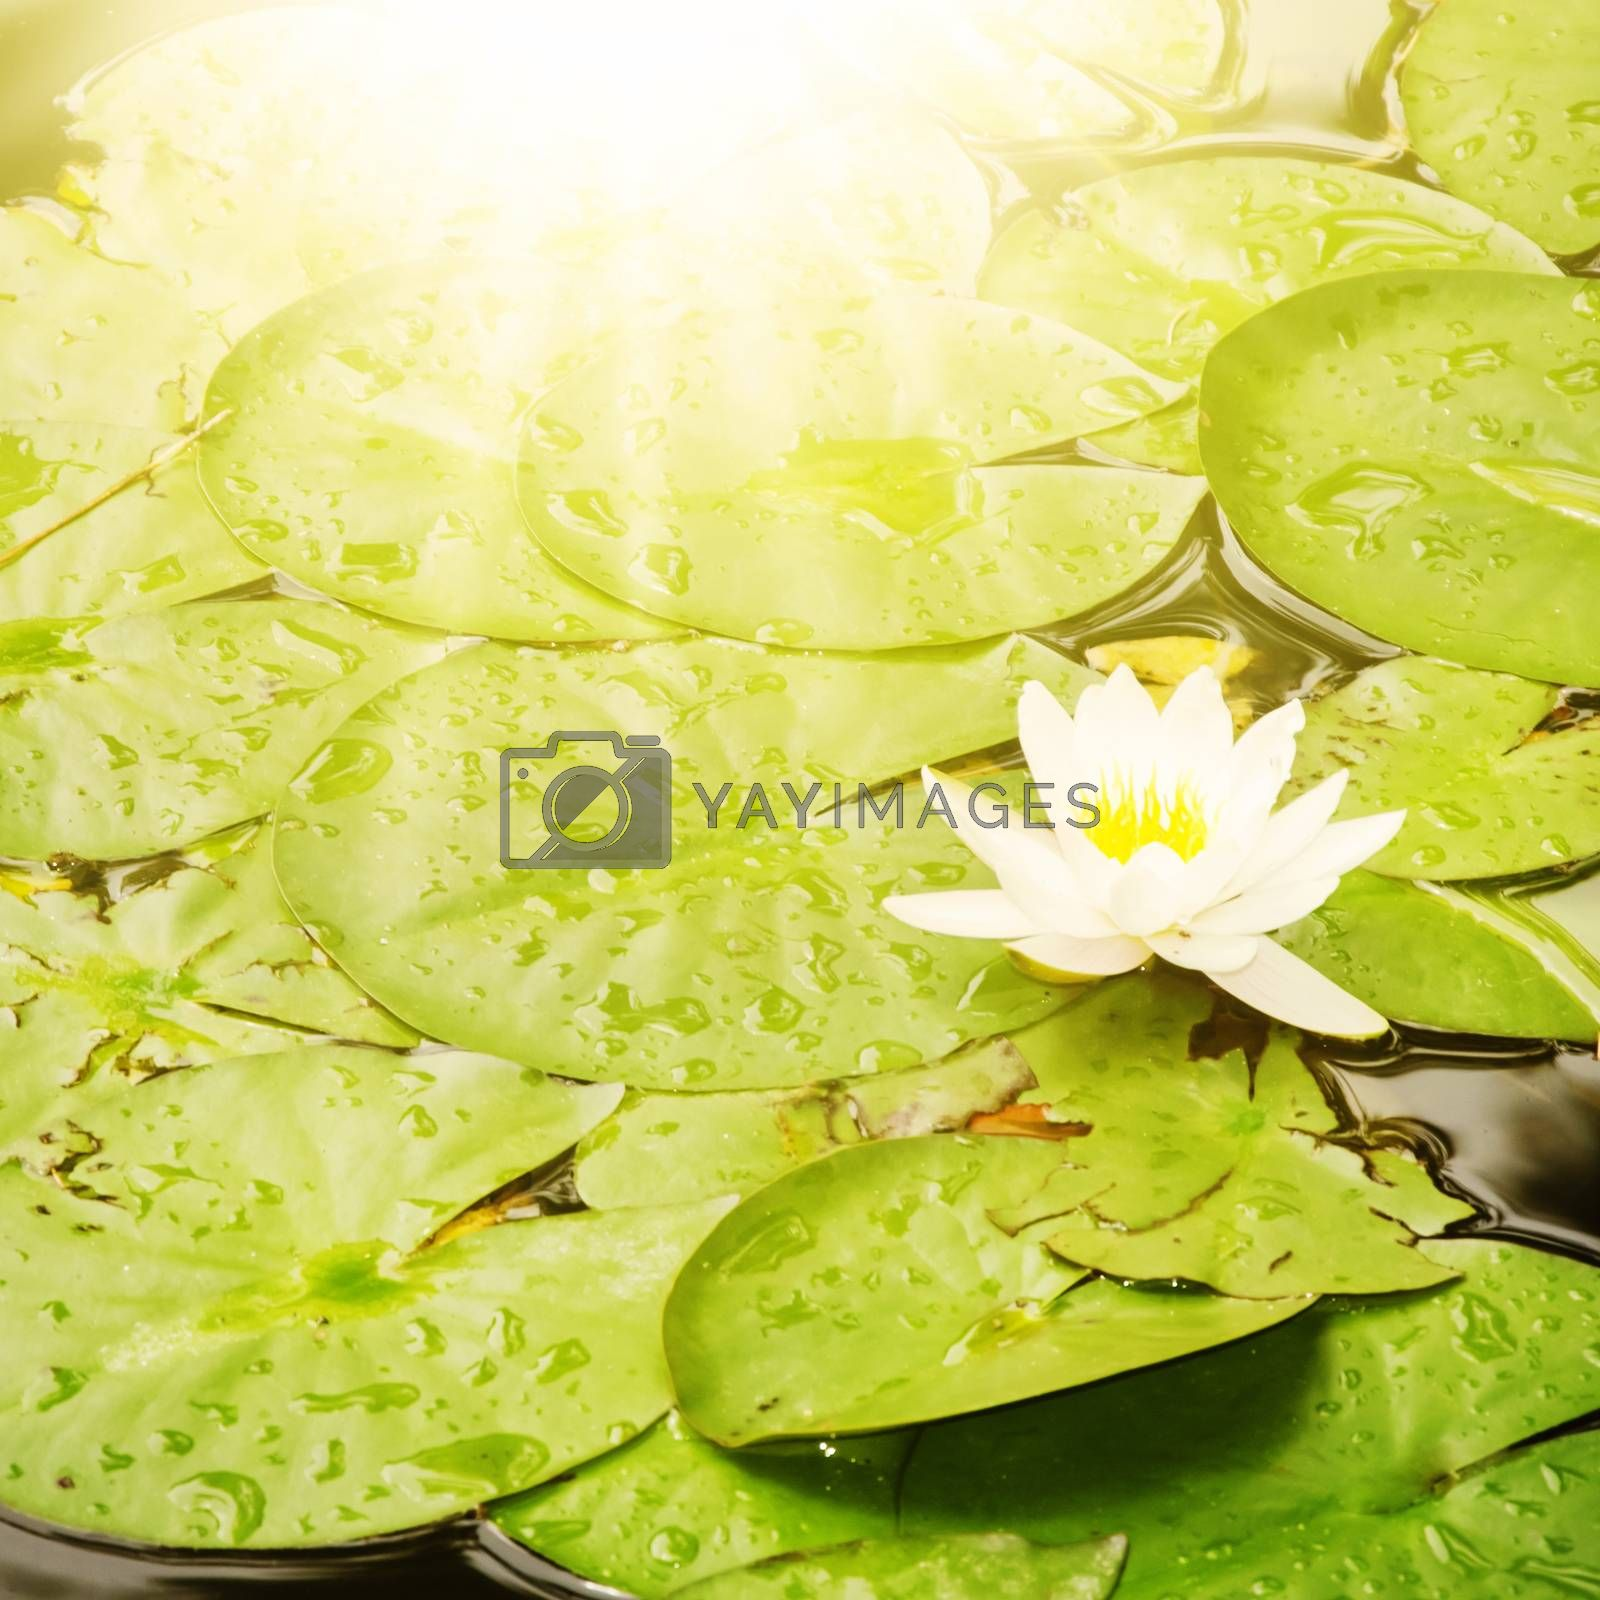 White Waterlily Flower Over Sunny Background